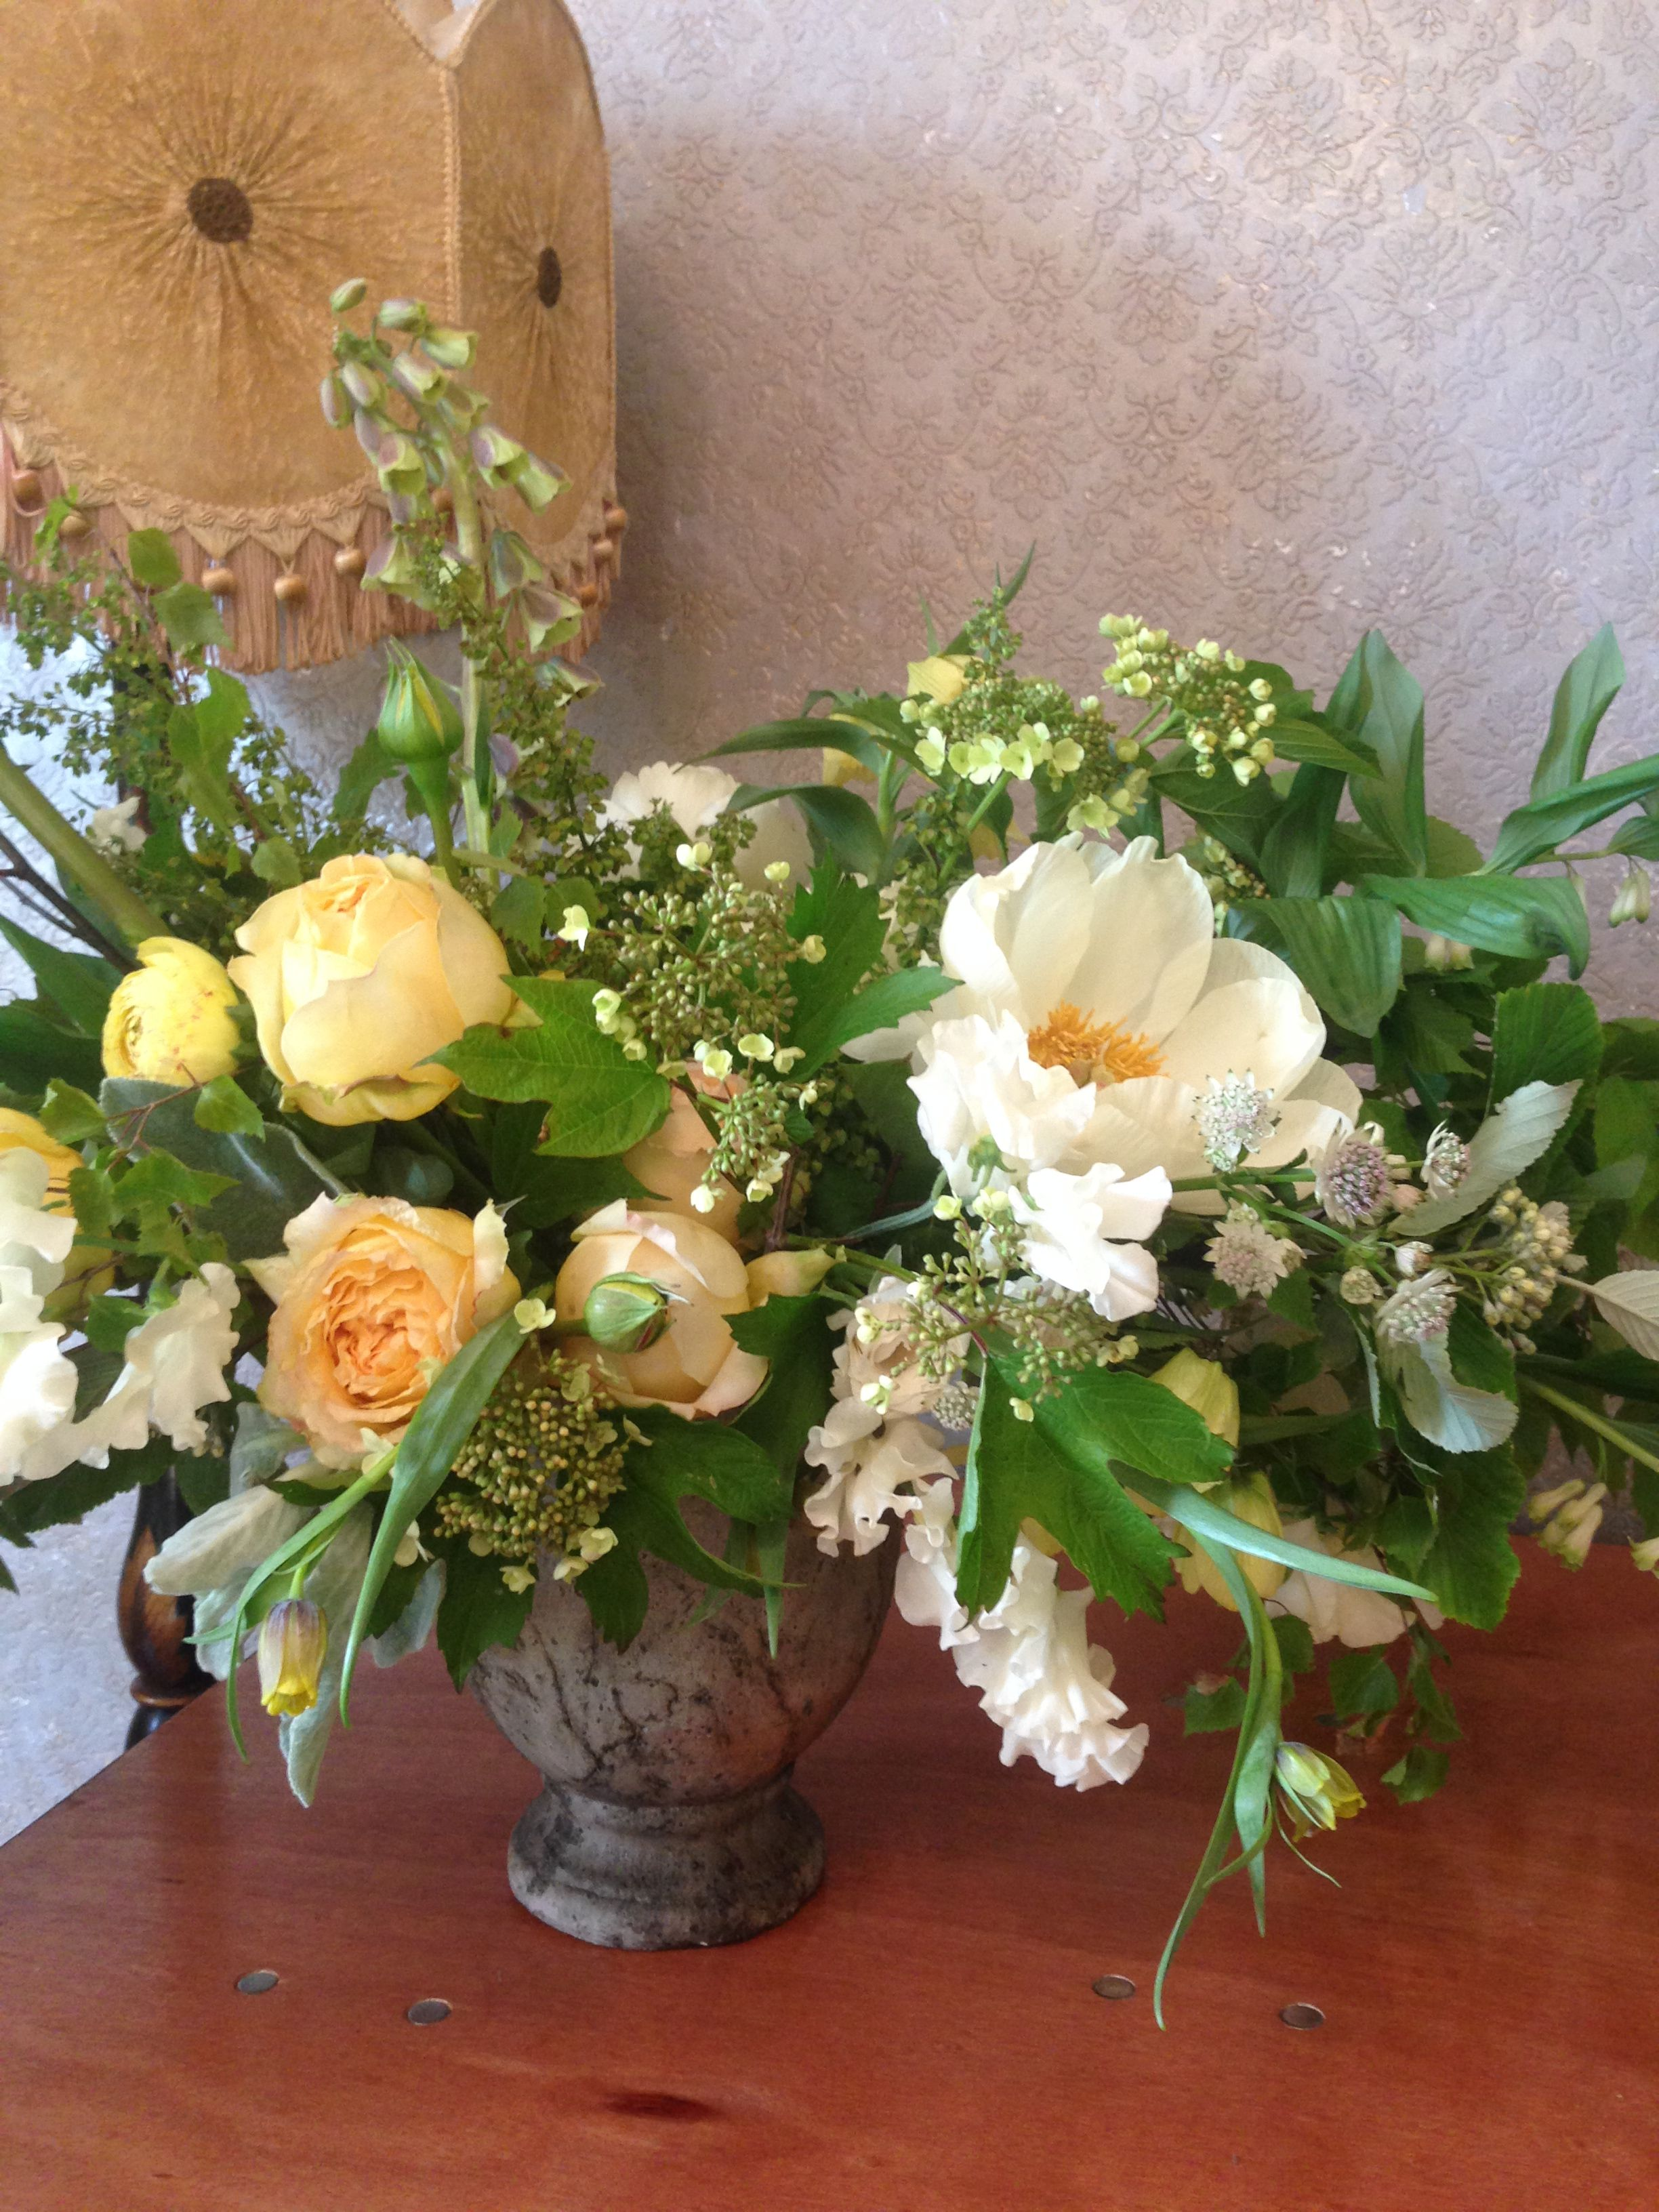 My arrangement from Little Flower School with Saipua and